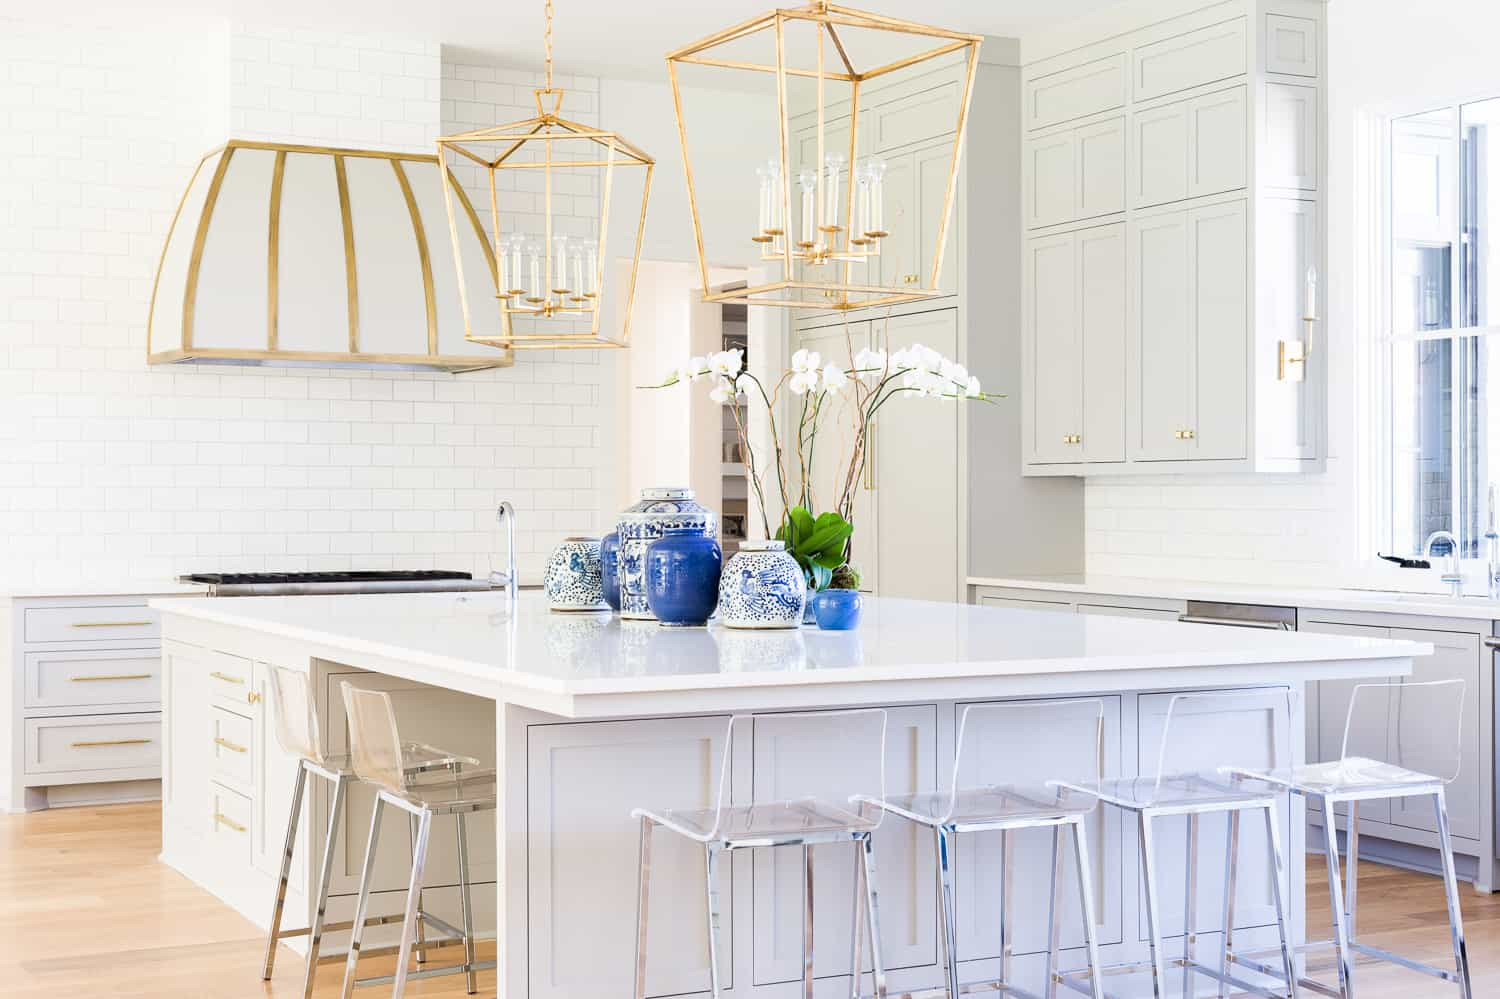 Home of the Month: Lori Paranjape Designs - Simple Stylings